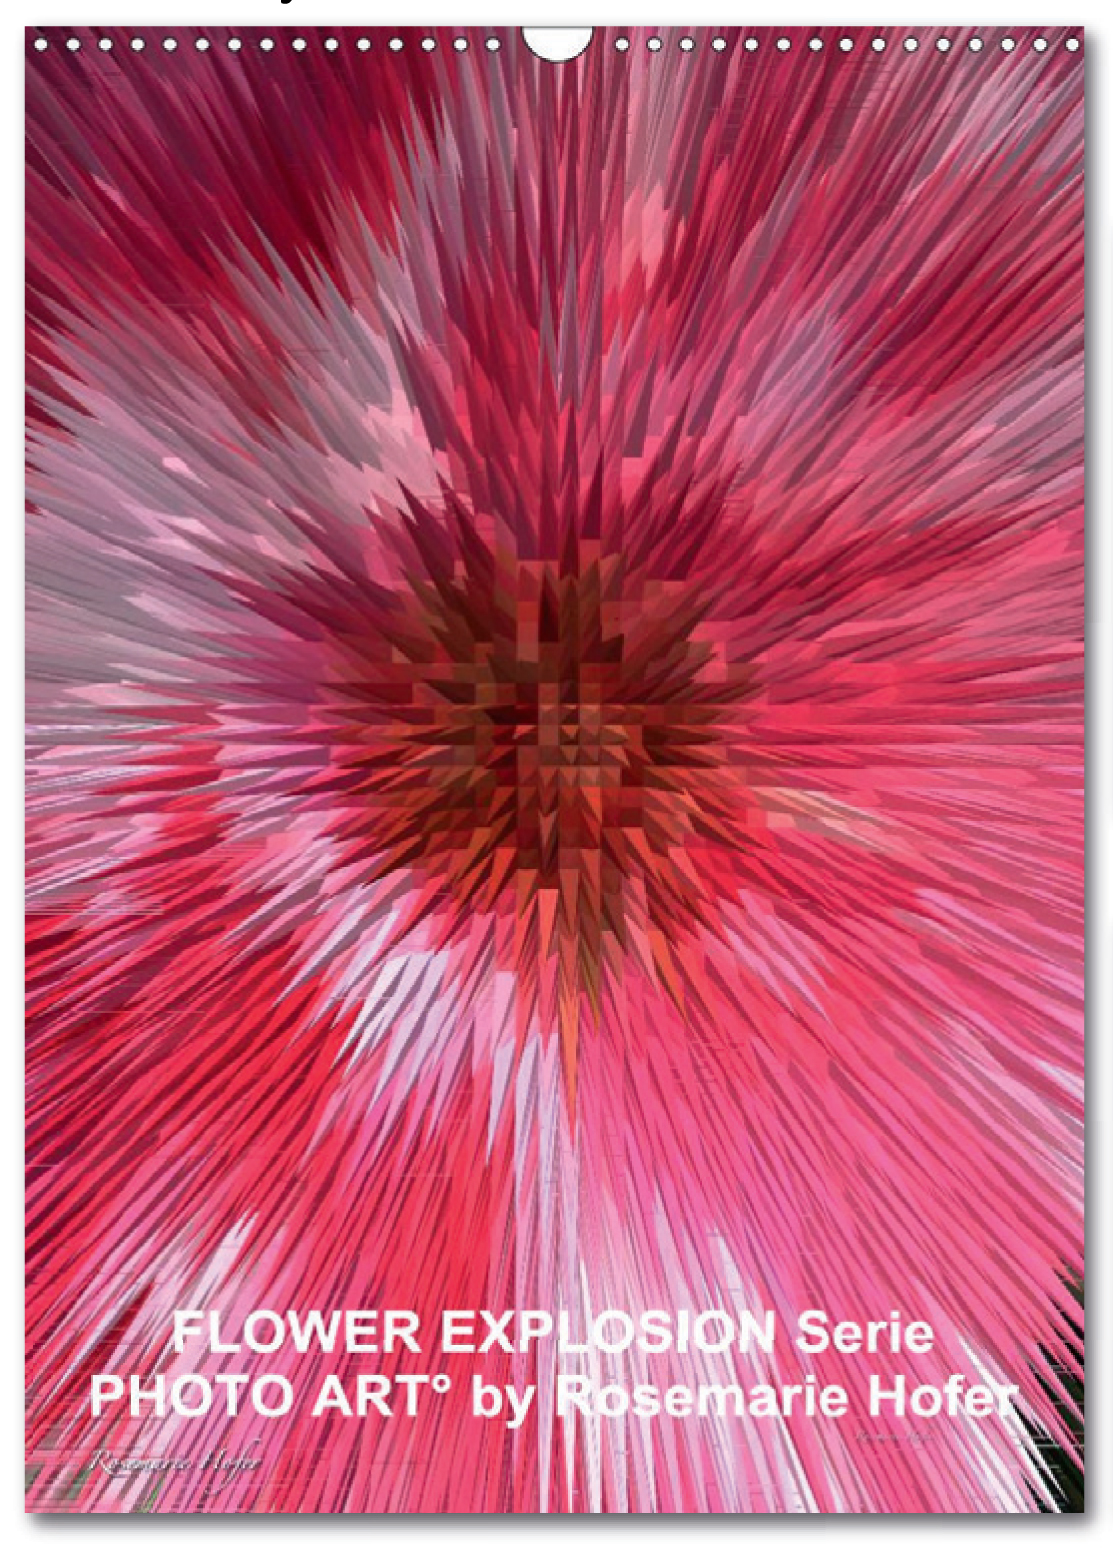 Posterbook-'Flower-Explosion-PHOTO-ART°-by-Rosemarie-Hofer'-Titelbild